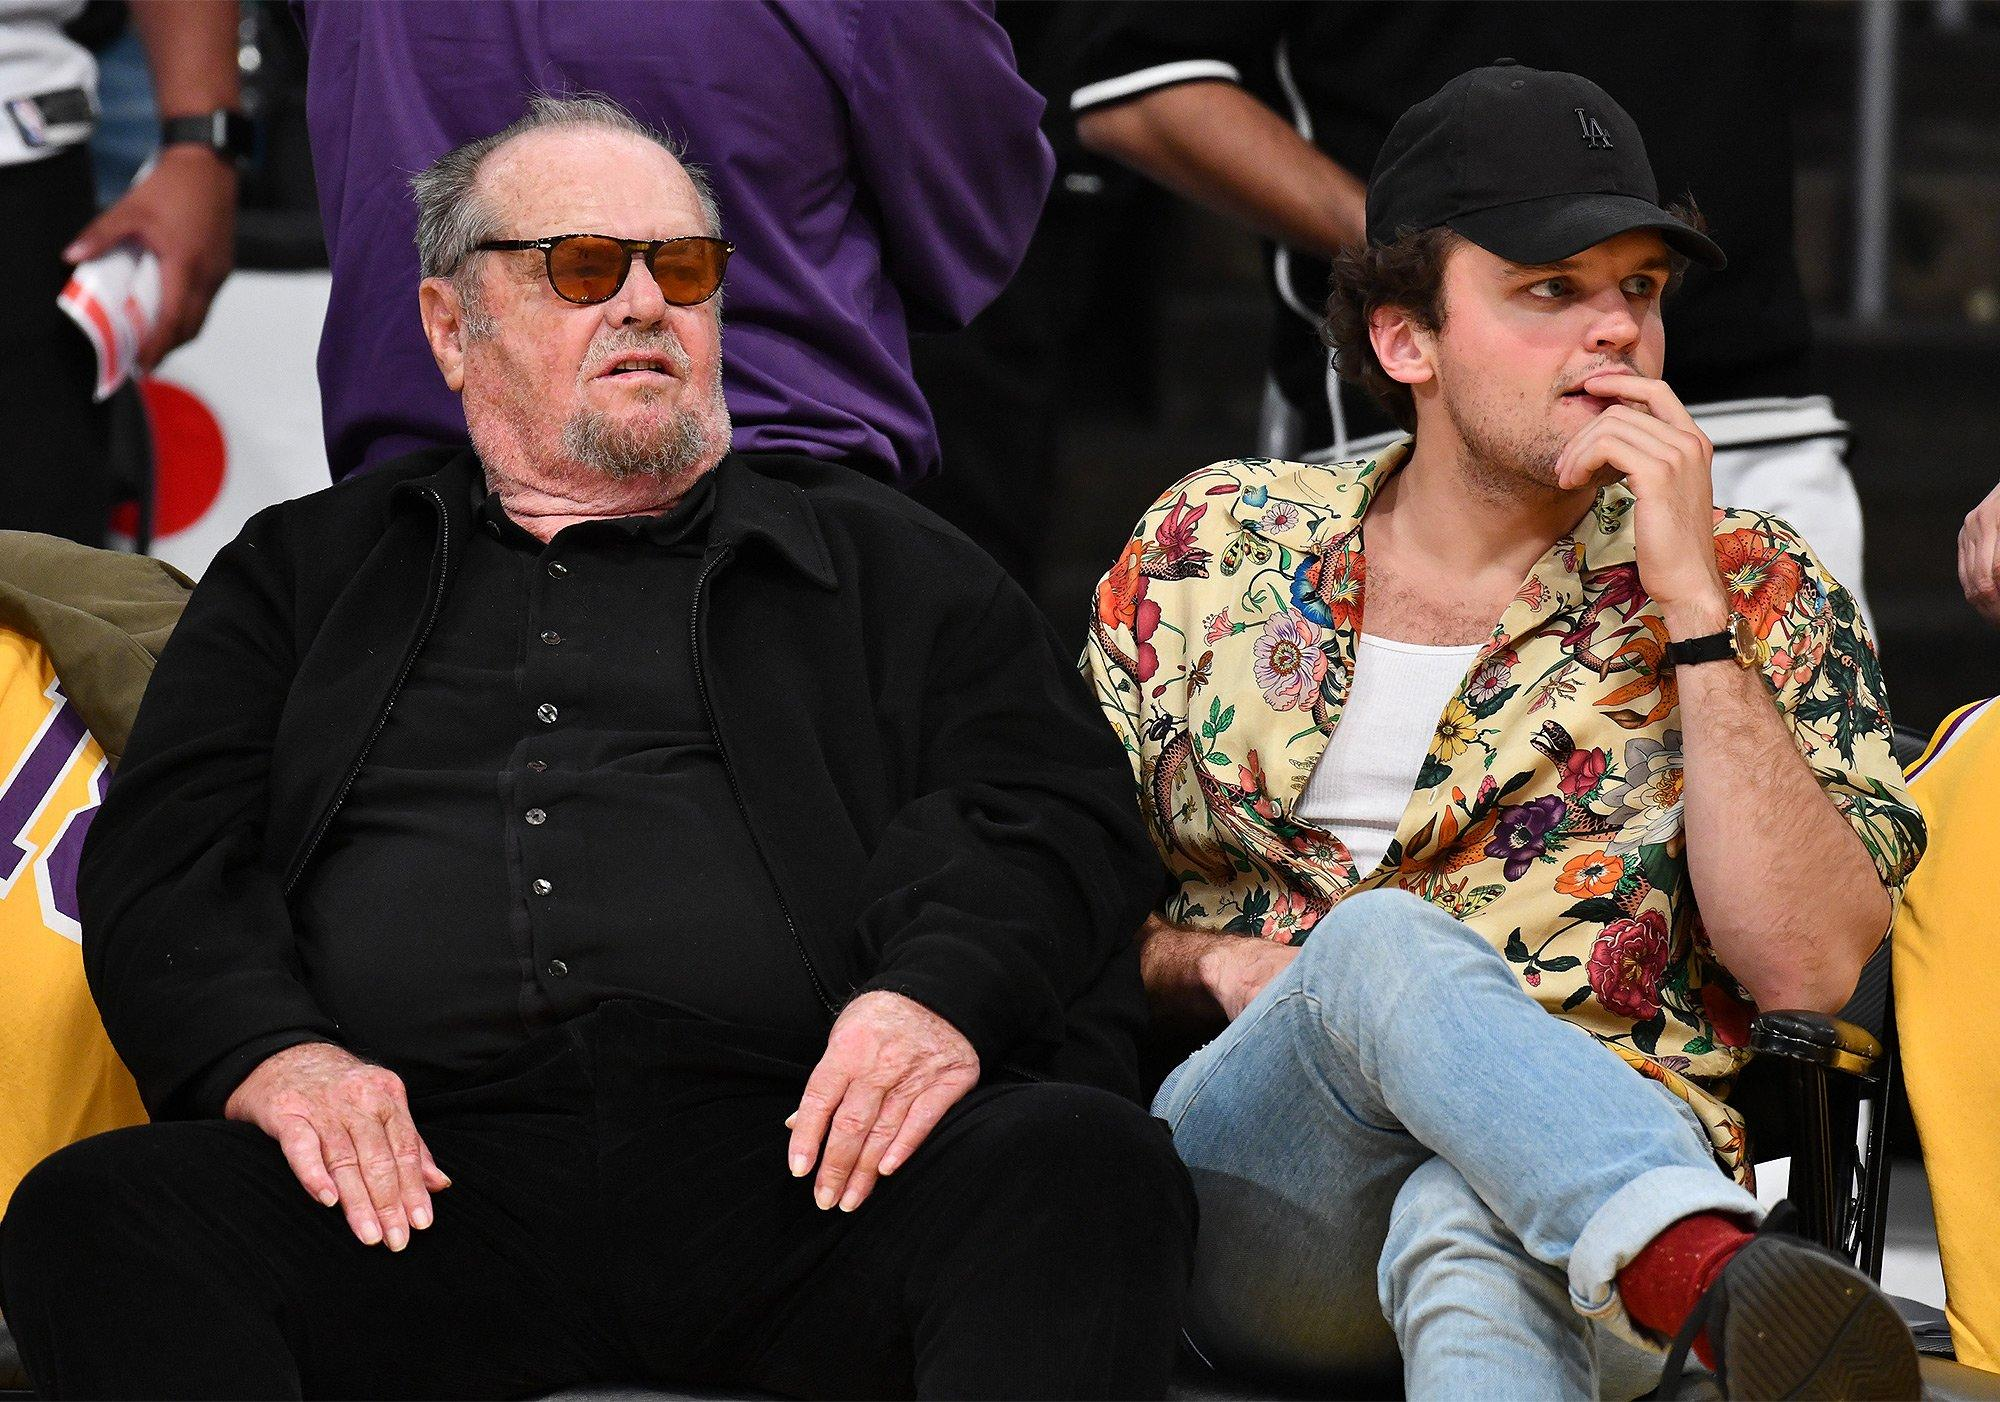 Jack Nicholson Joined By Son Ray As He Watches His Favorite Team The Los Angeles Lakers Lose De zwart wit of full color illustraties vindt u terug op tal van producten. https www yahoo com entertainment jack nicholson joined son ray 153240731 html